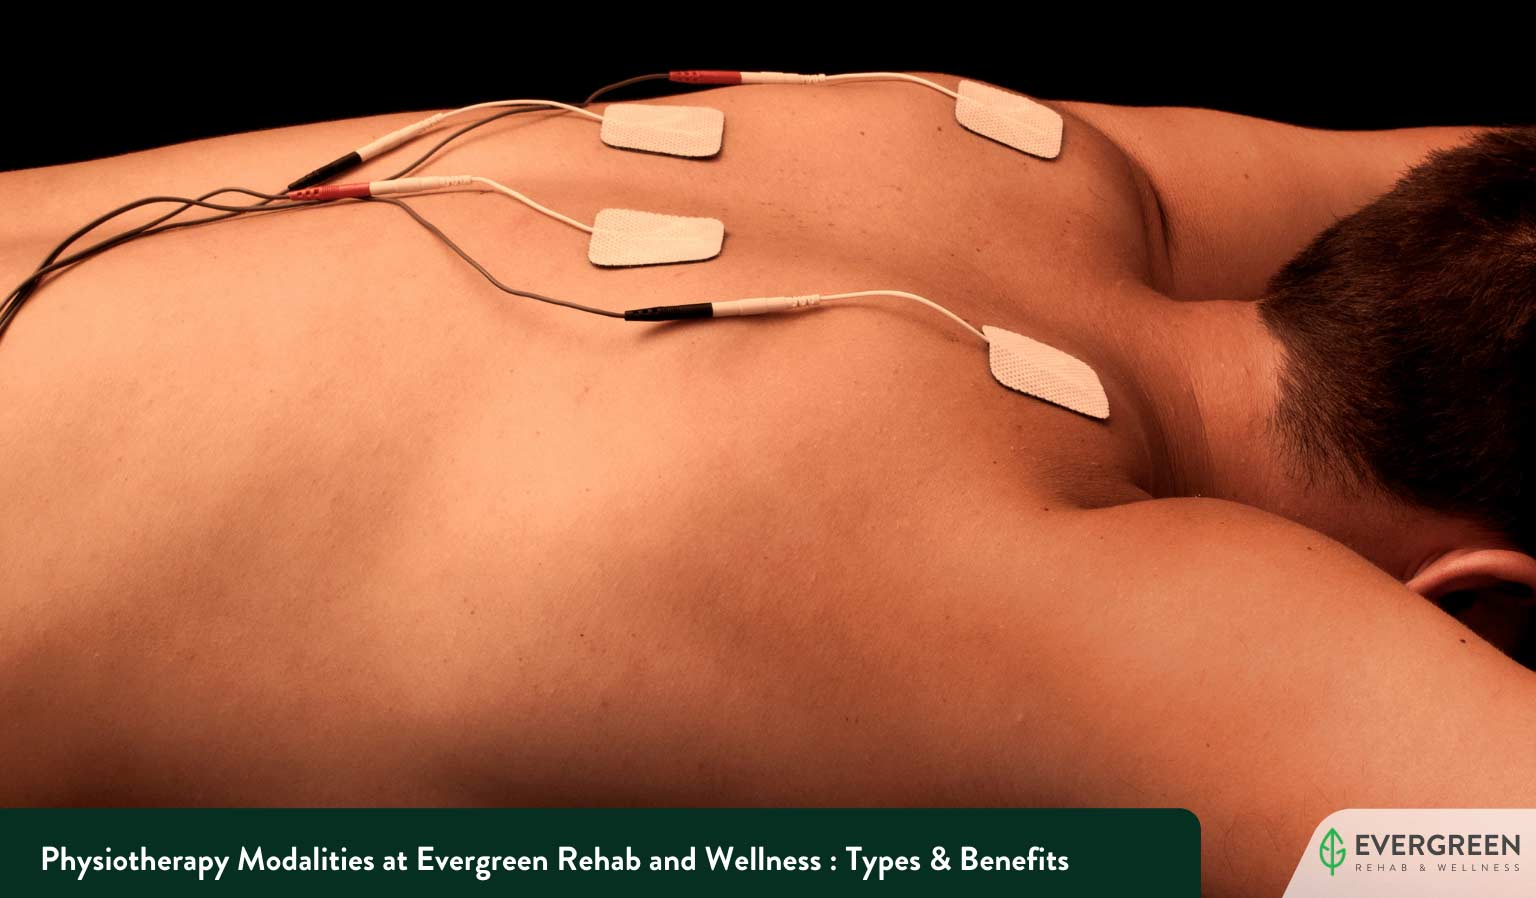 Physiotherapy Modalities at Evergreen Rehab and Wellness : Types & Benefits